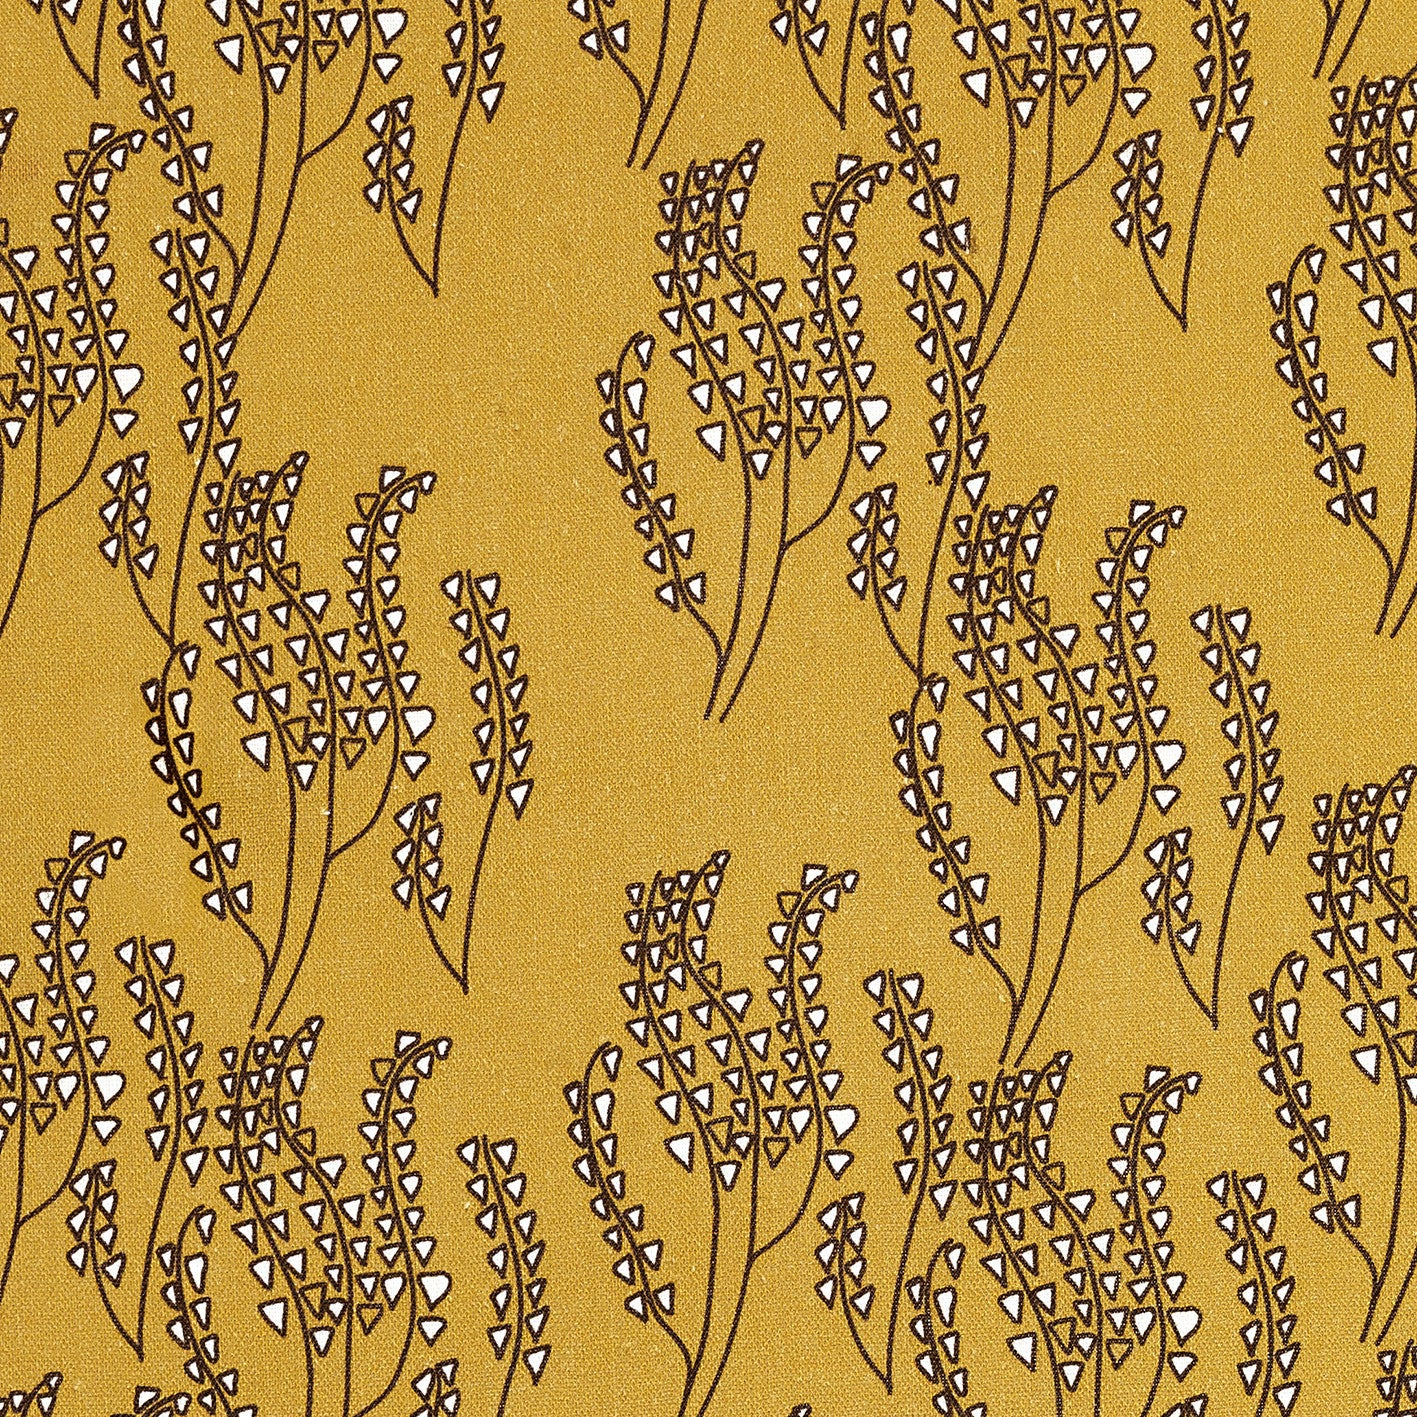 Maricopa Graphic Floral Pattern Cotton Linen Fabric in Gold with Chocolate Brown